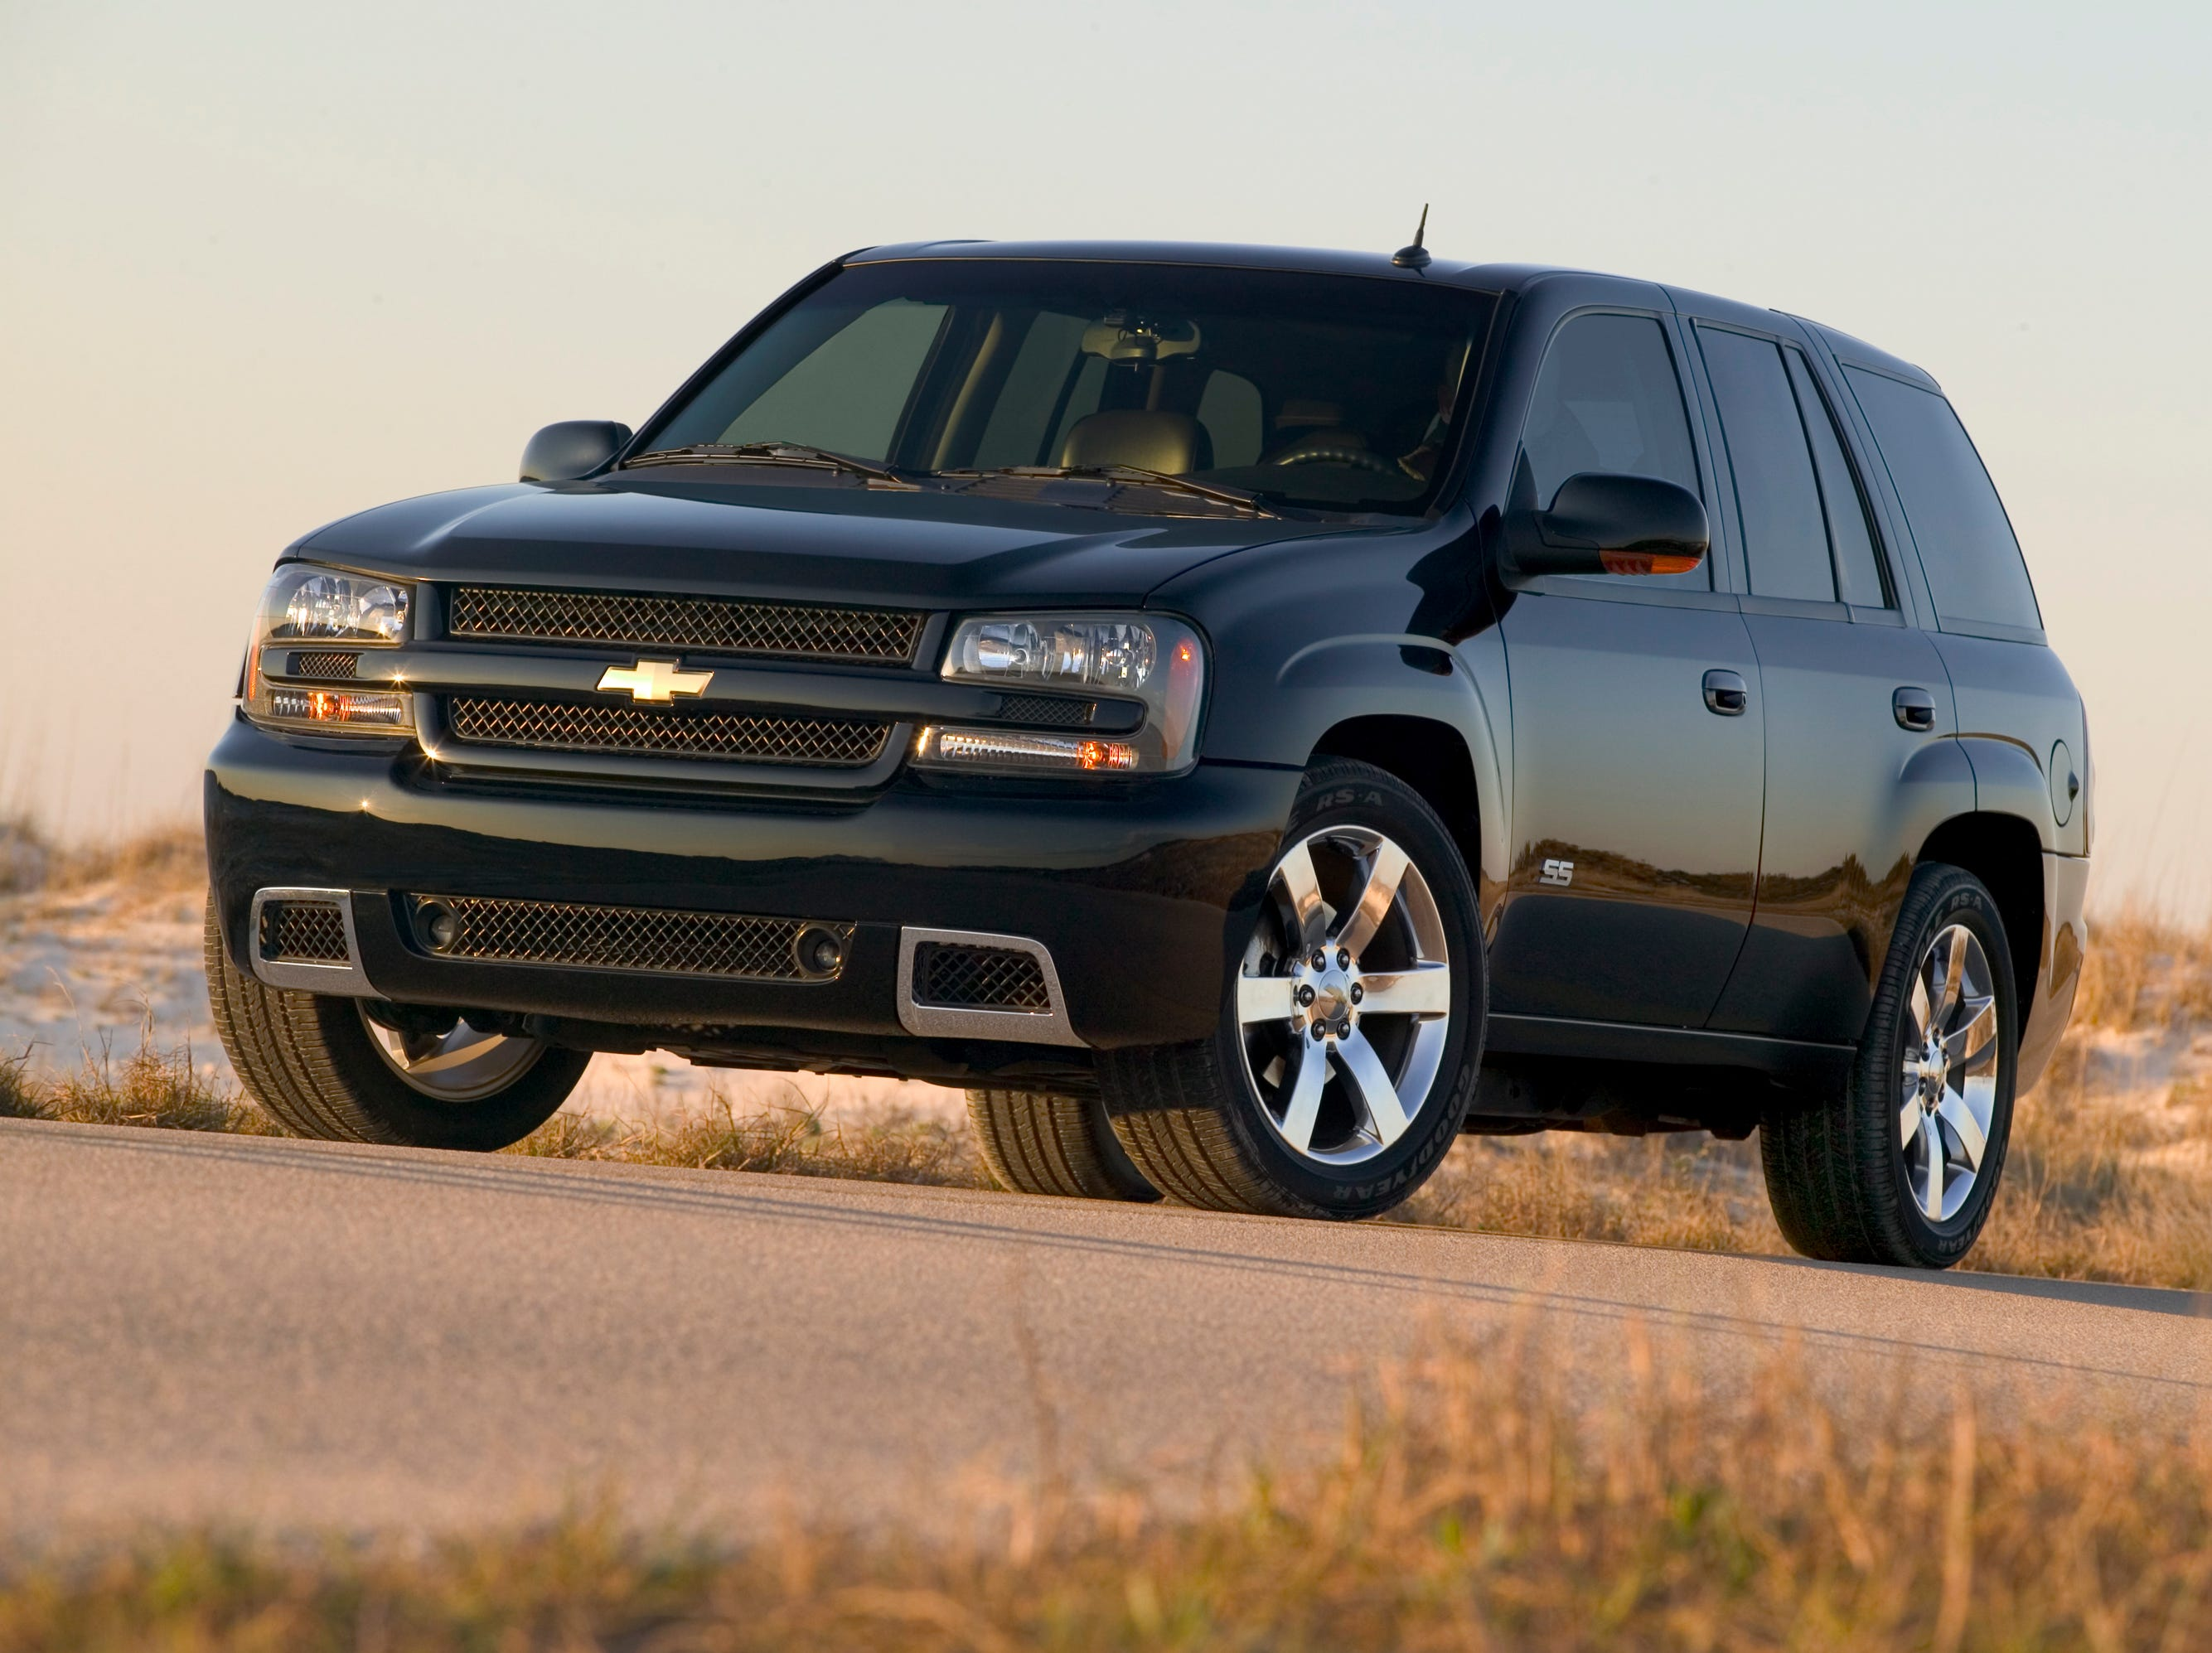 This is a 2008 Chevrolet TrailBlazer SS. The new SUV called the Chevy Blazer, takes an inspiration from the long-gone Chevy TrailBlazer.